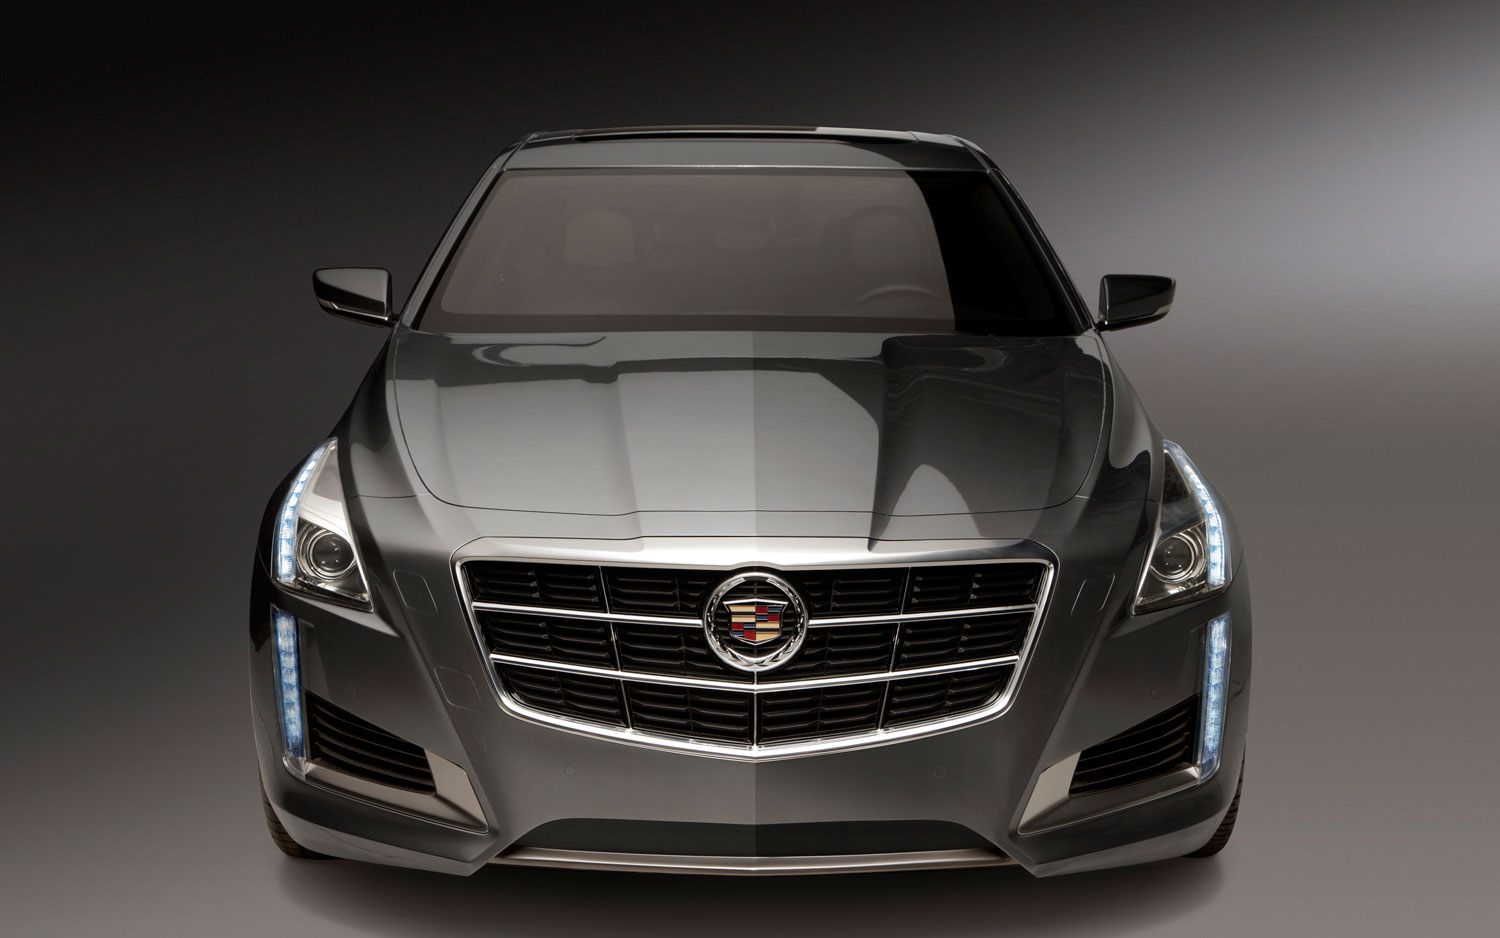 Consumer Reports gave the 2014 CTS sedan the title of Best Luxury Car